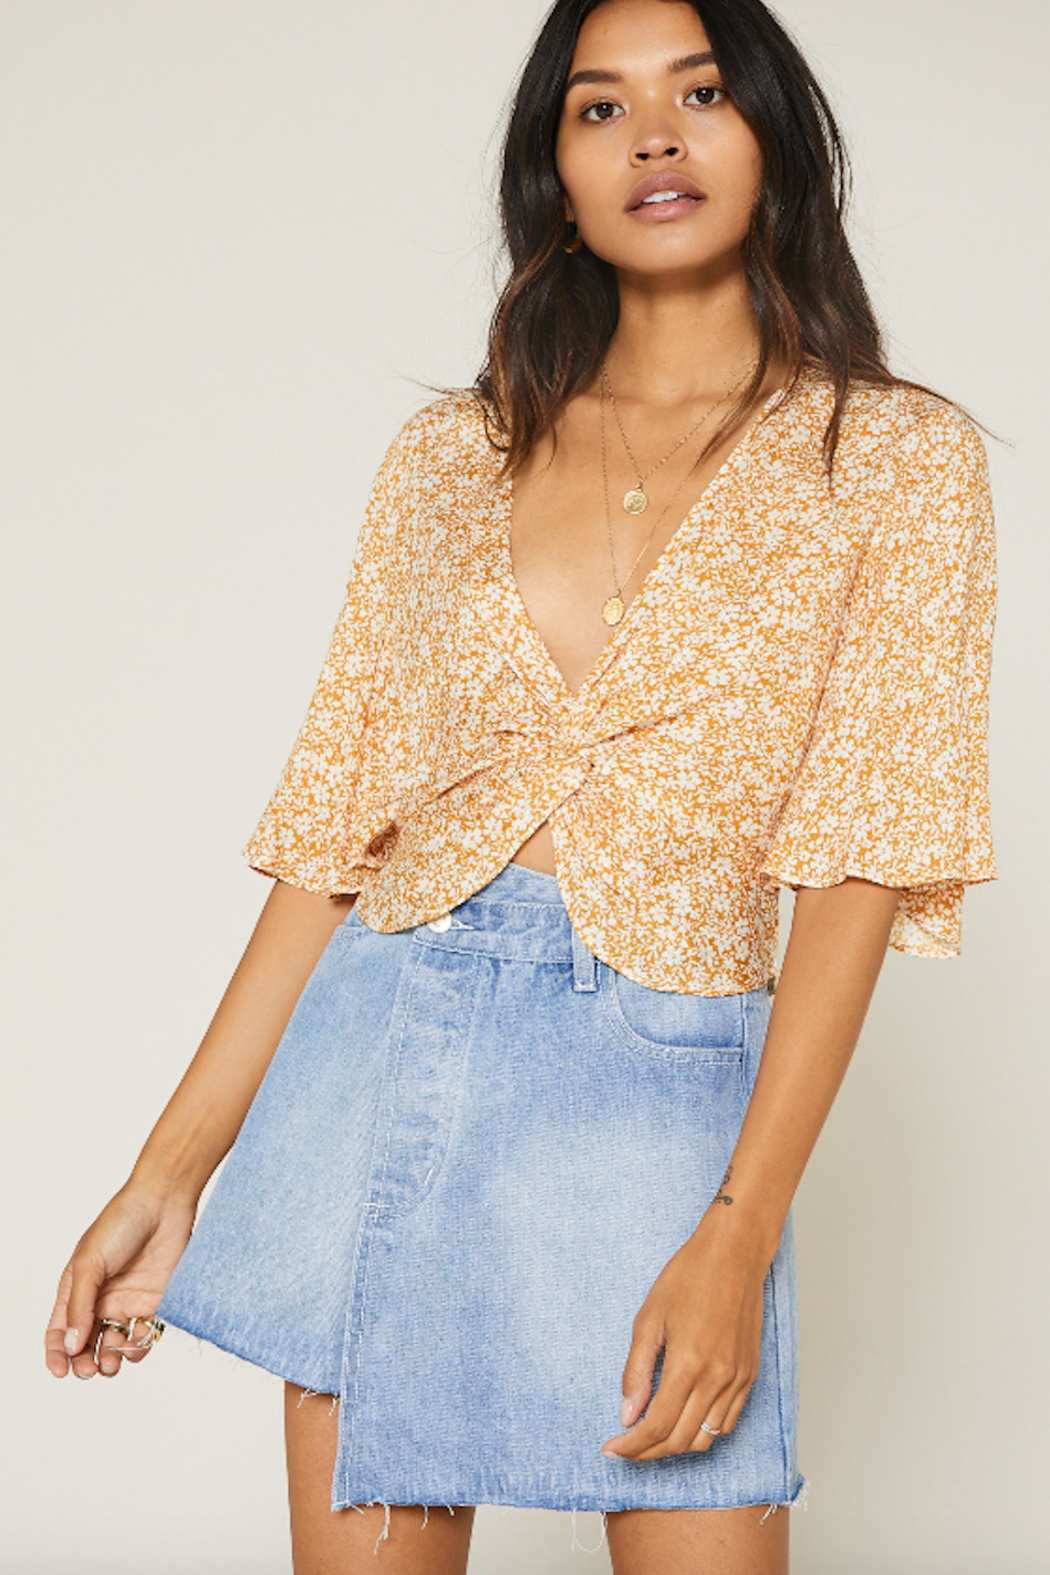 SAGE THE LABEL Wild Honey Knot Front Top - Main Image